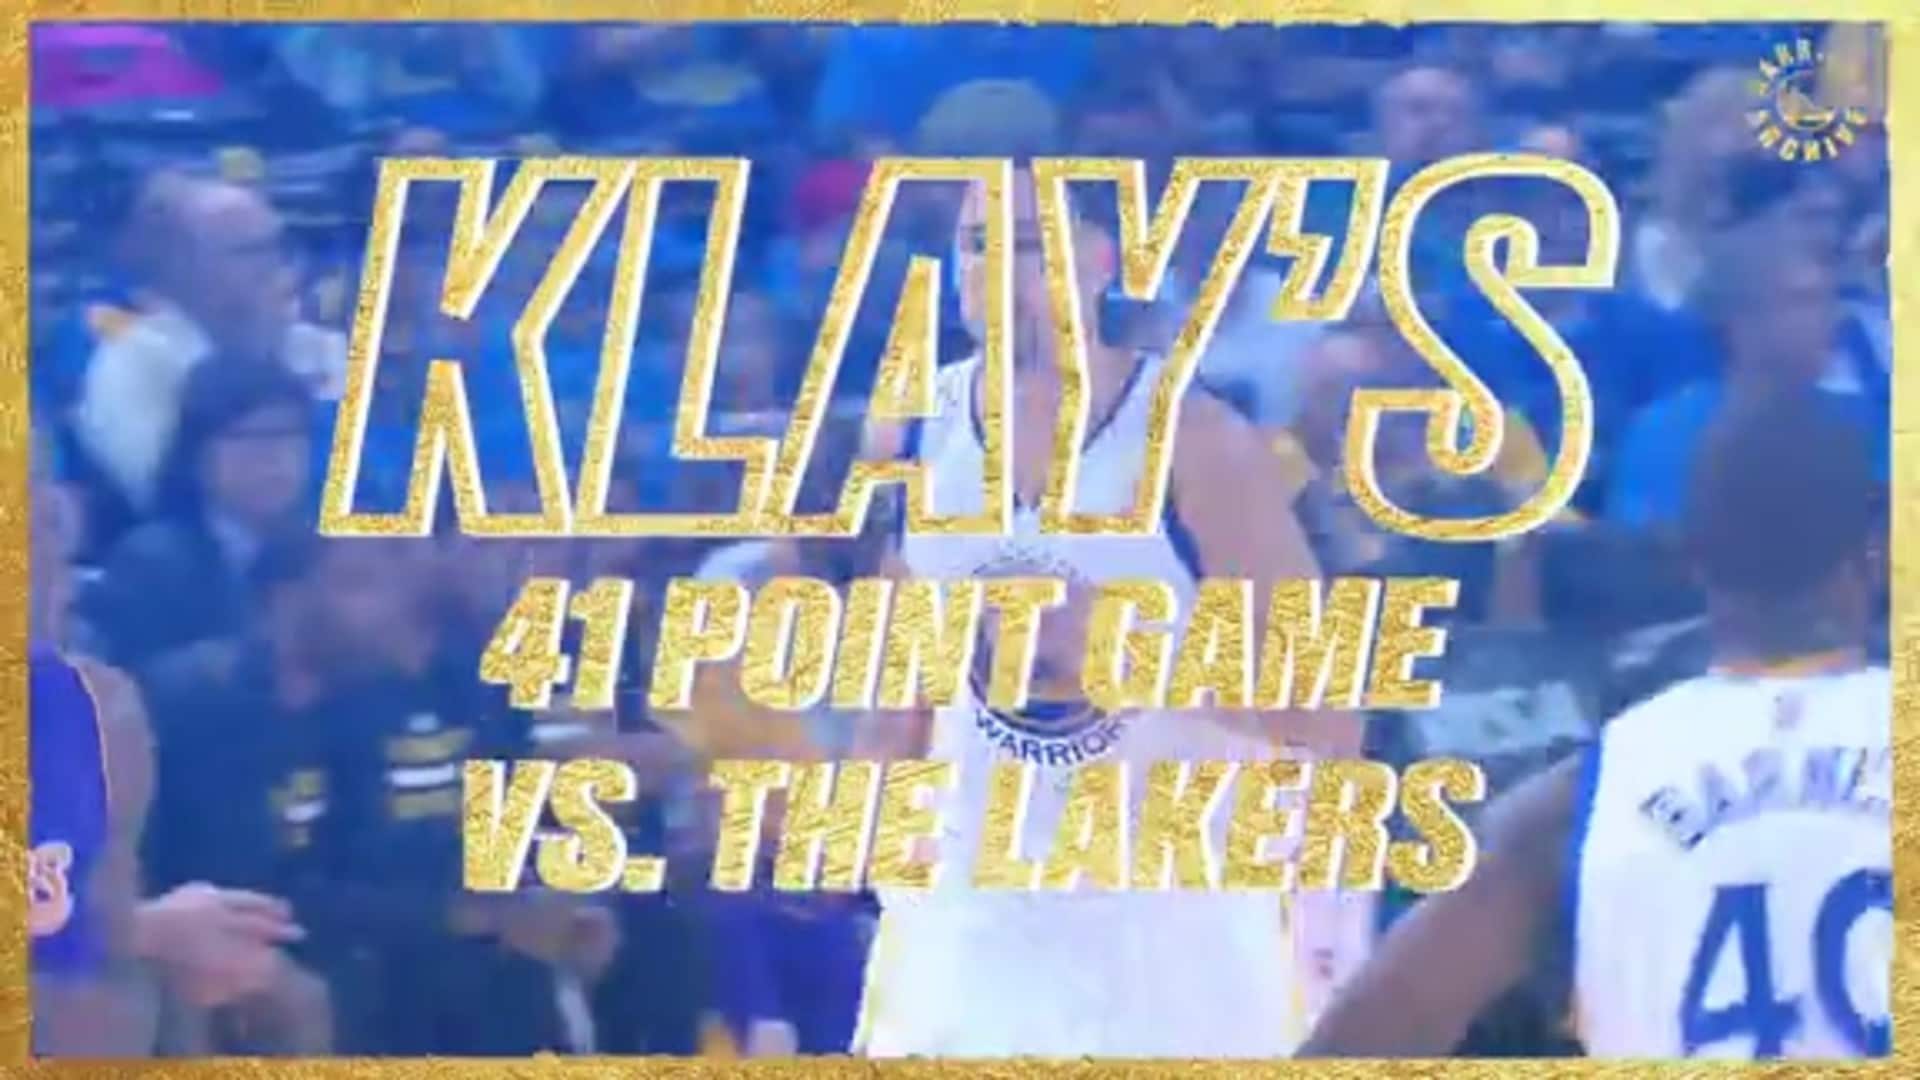 Warriors Archive: Klay Drops 41 on Kobe and Lakers